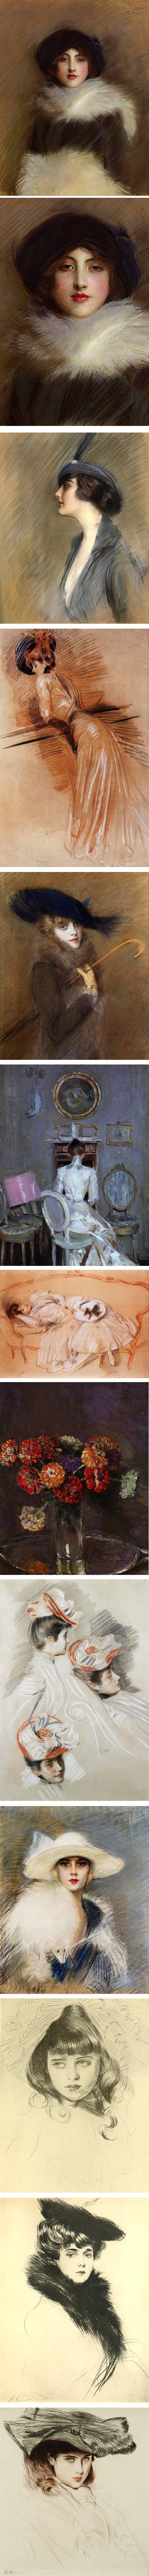 Paul Cesar Helleu, pastel society portraits, chalk, drypoint etching